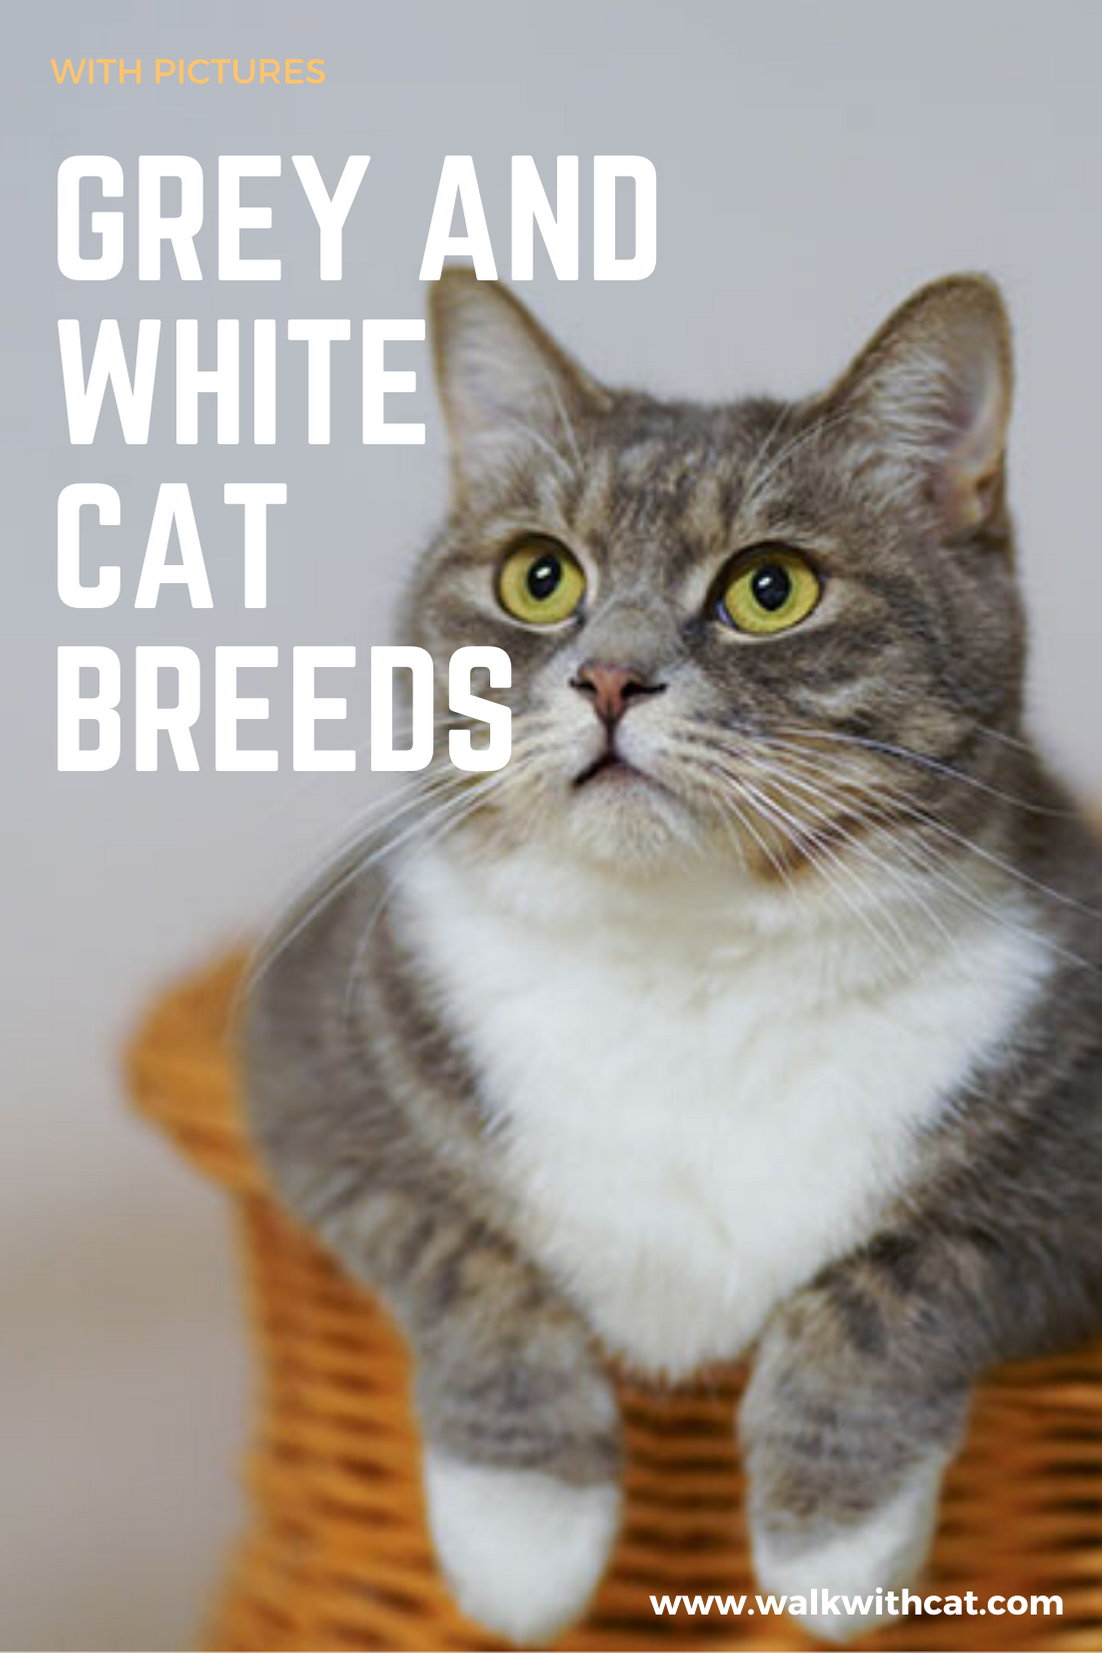 11 Grey and White Cat Breeds With Pictures in